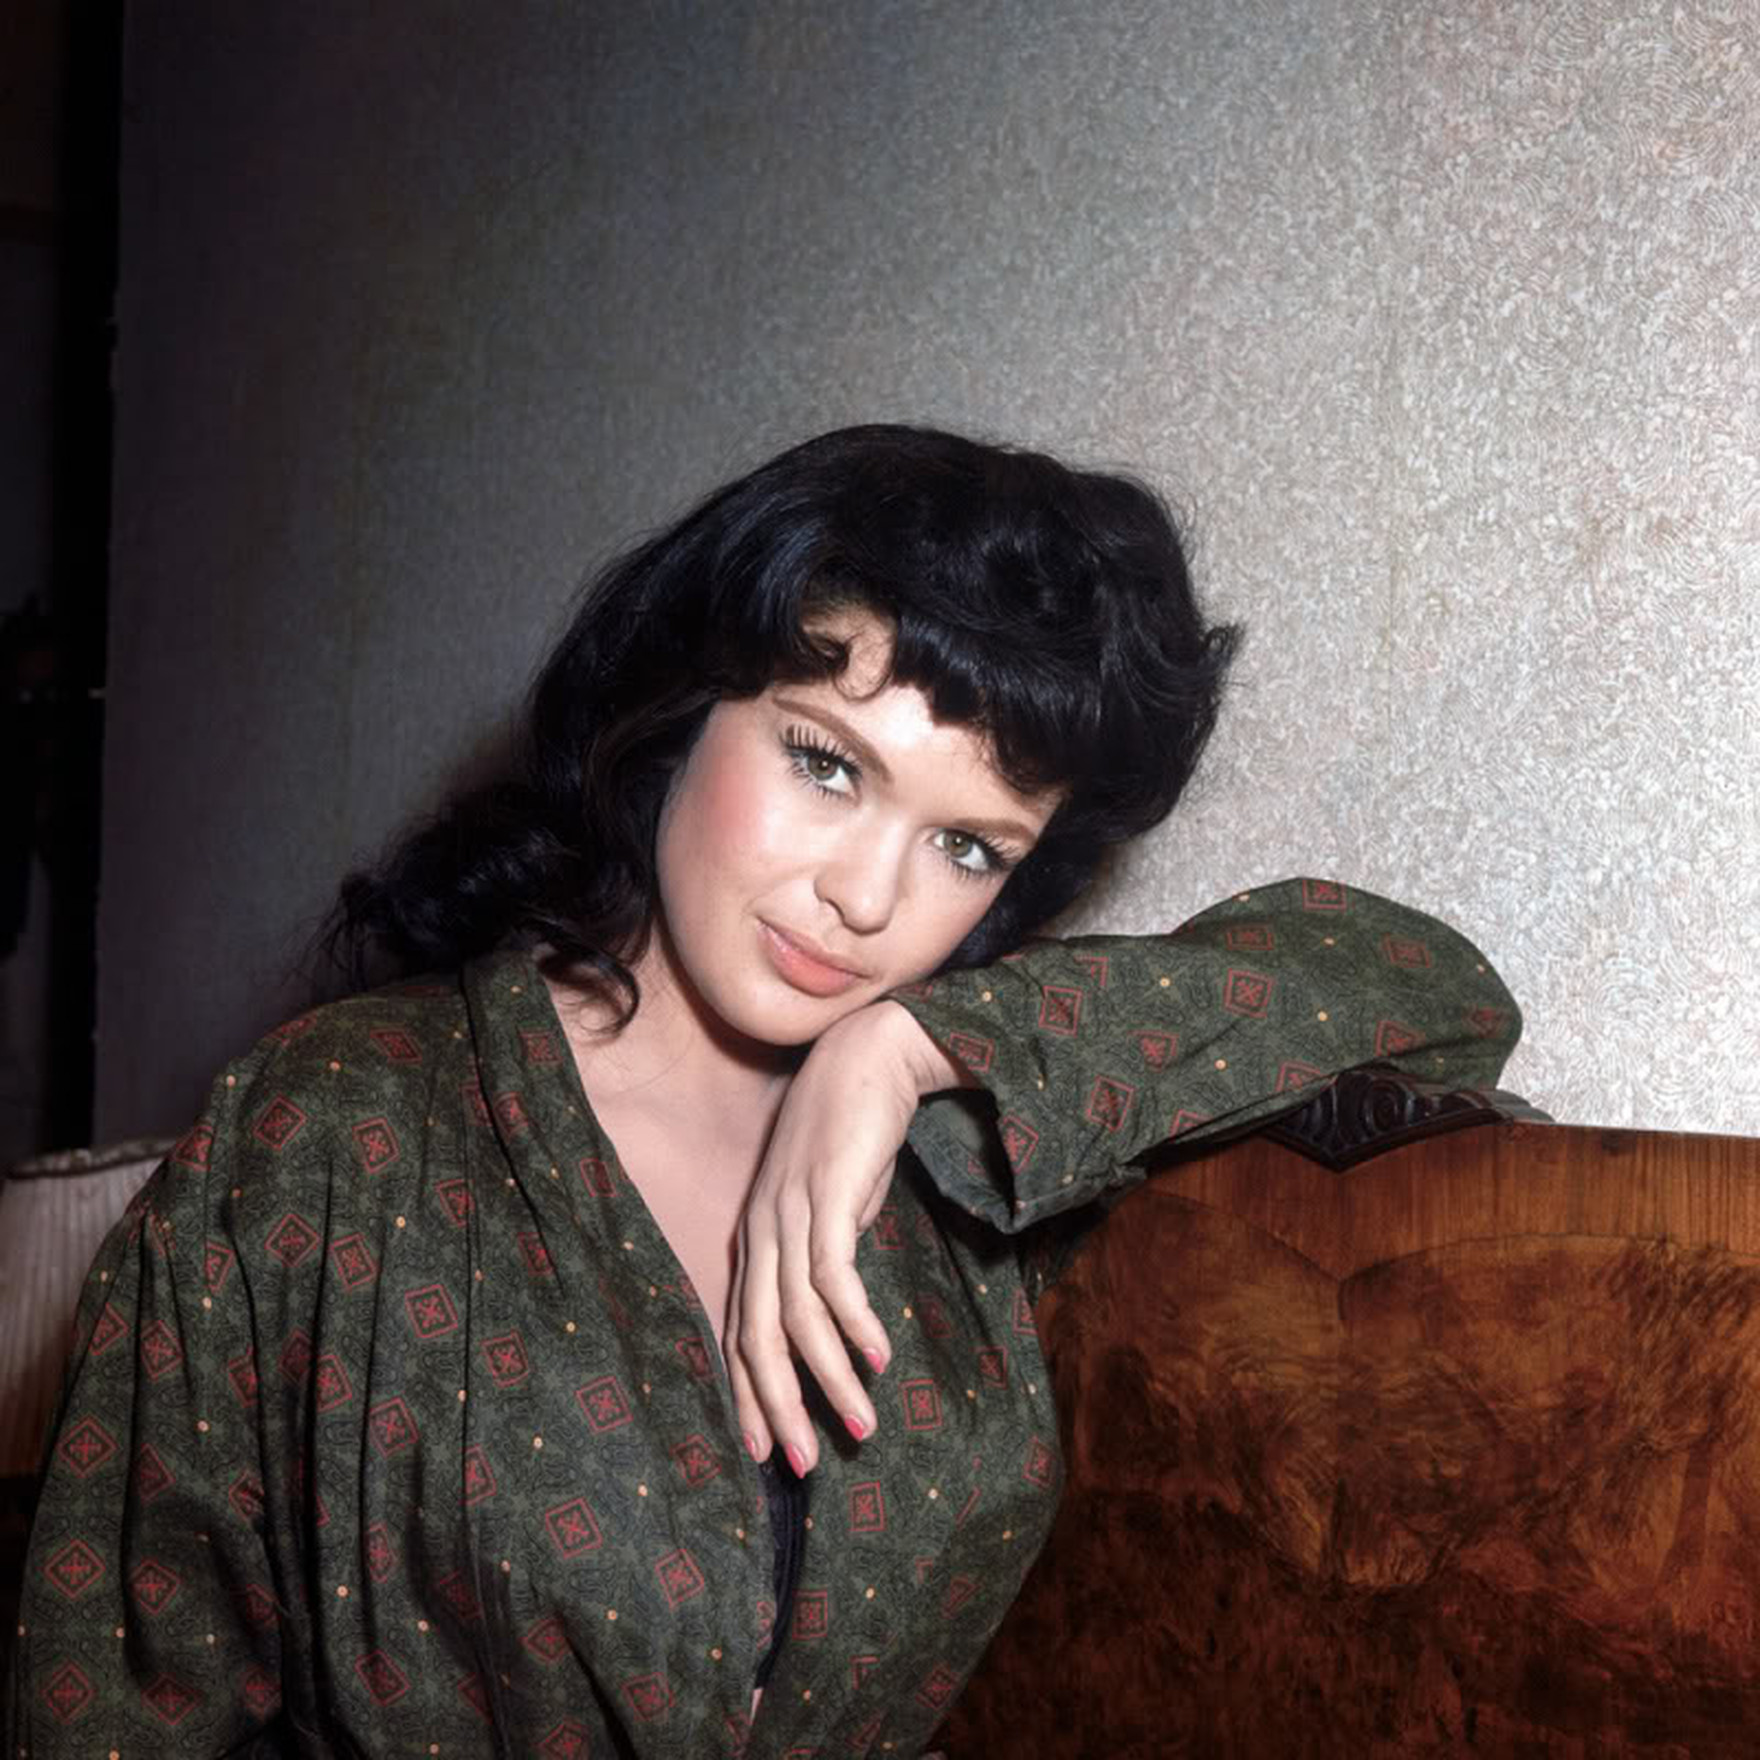 Classic Hollywood #68 - Jayne Mansfield As A Brunette